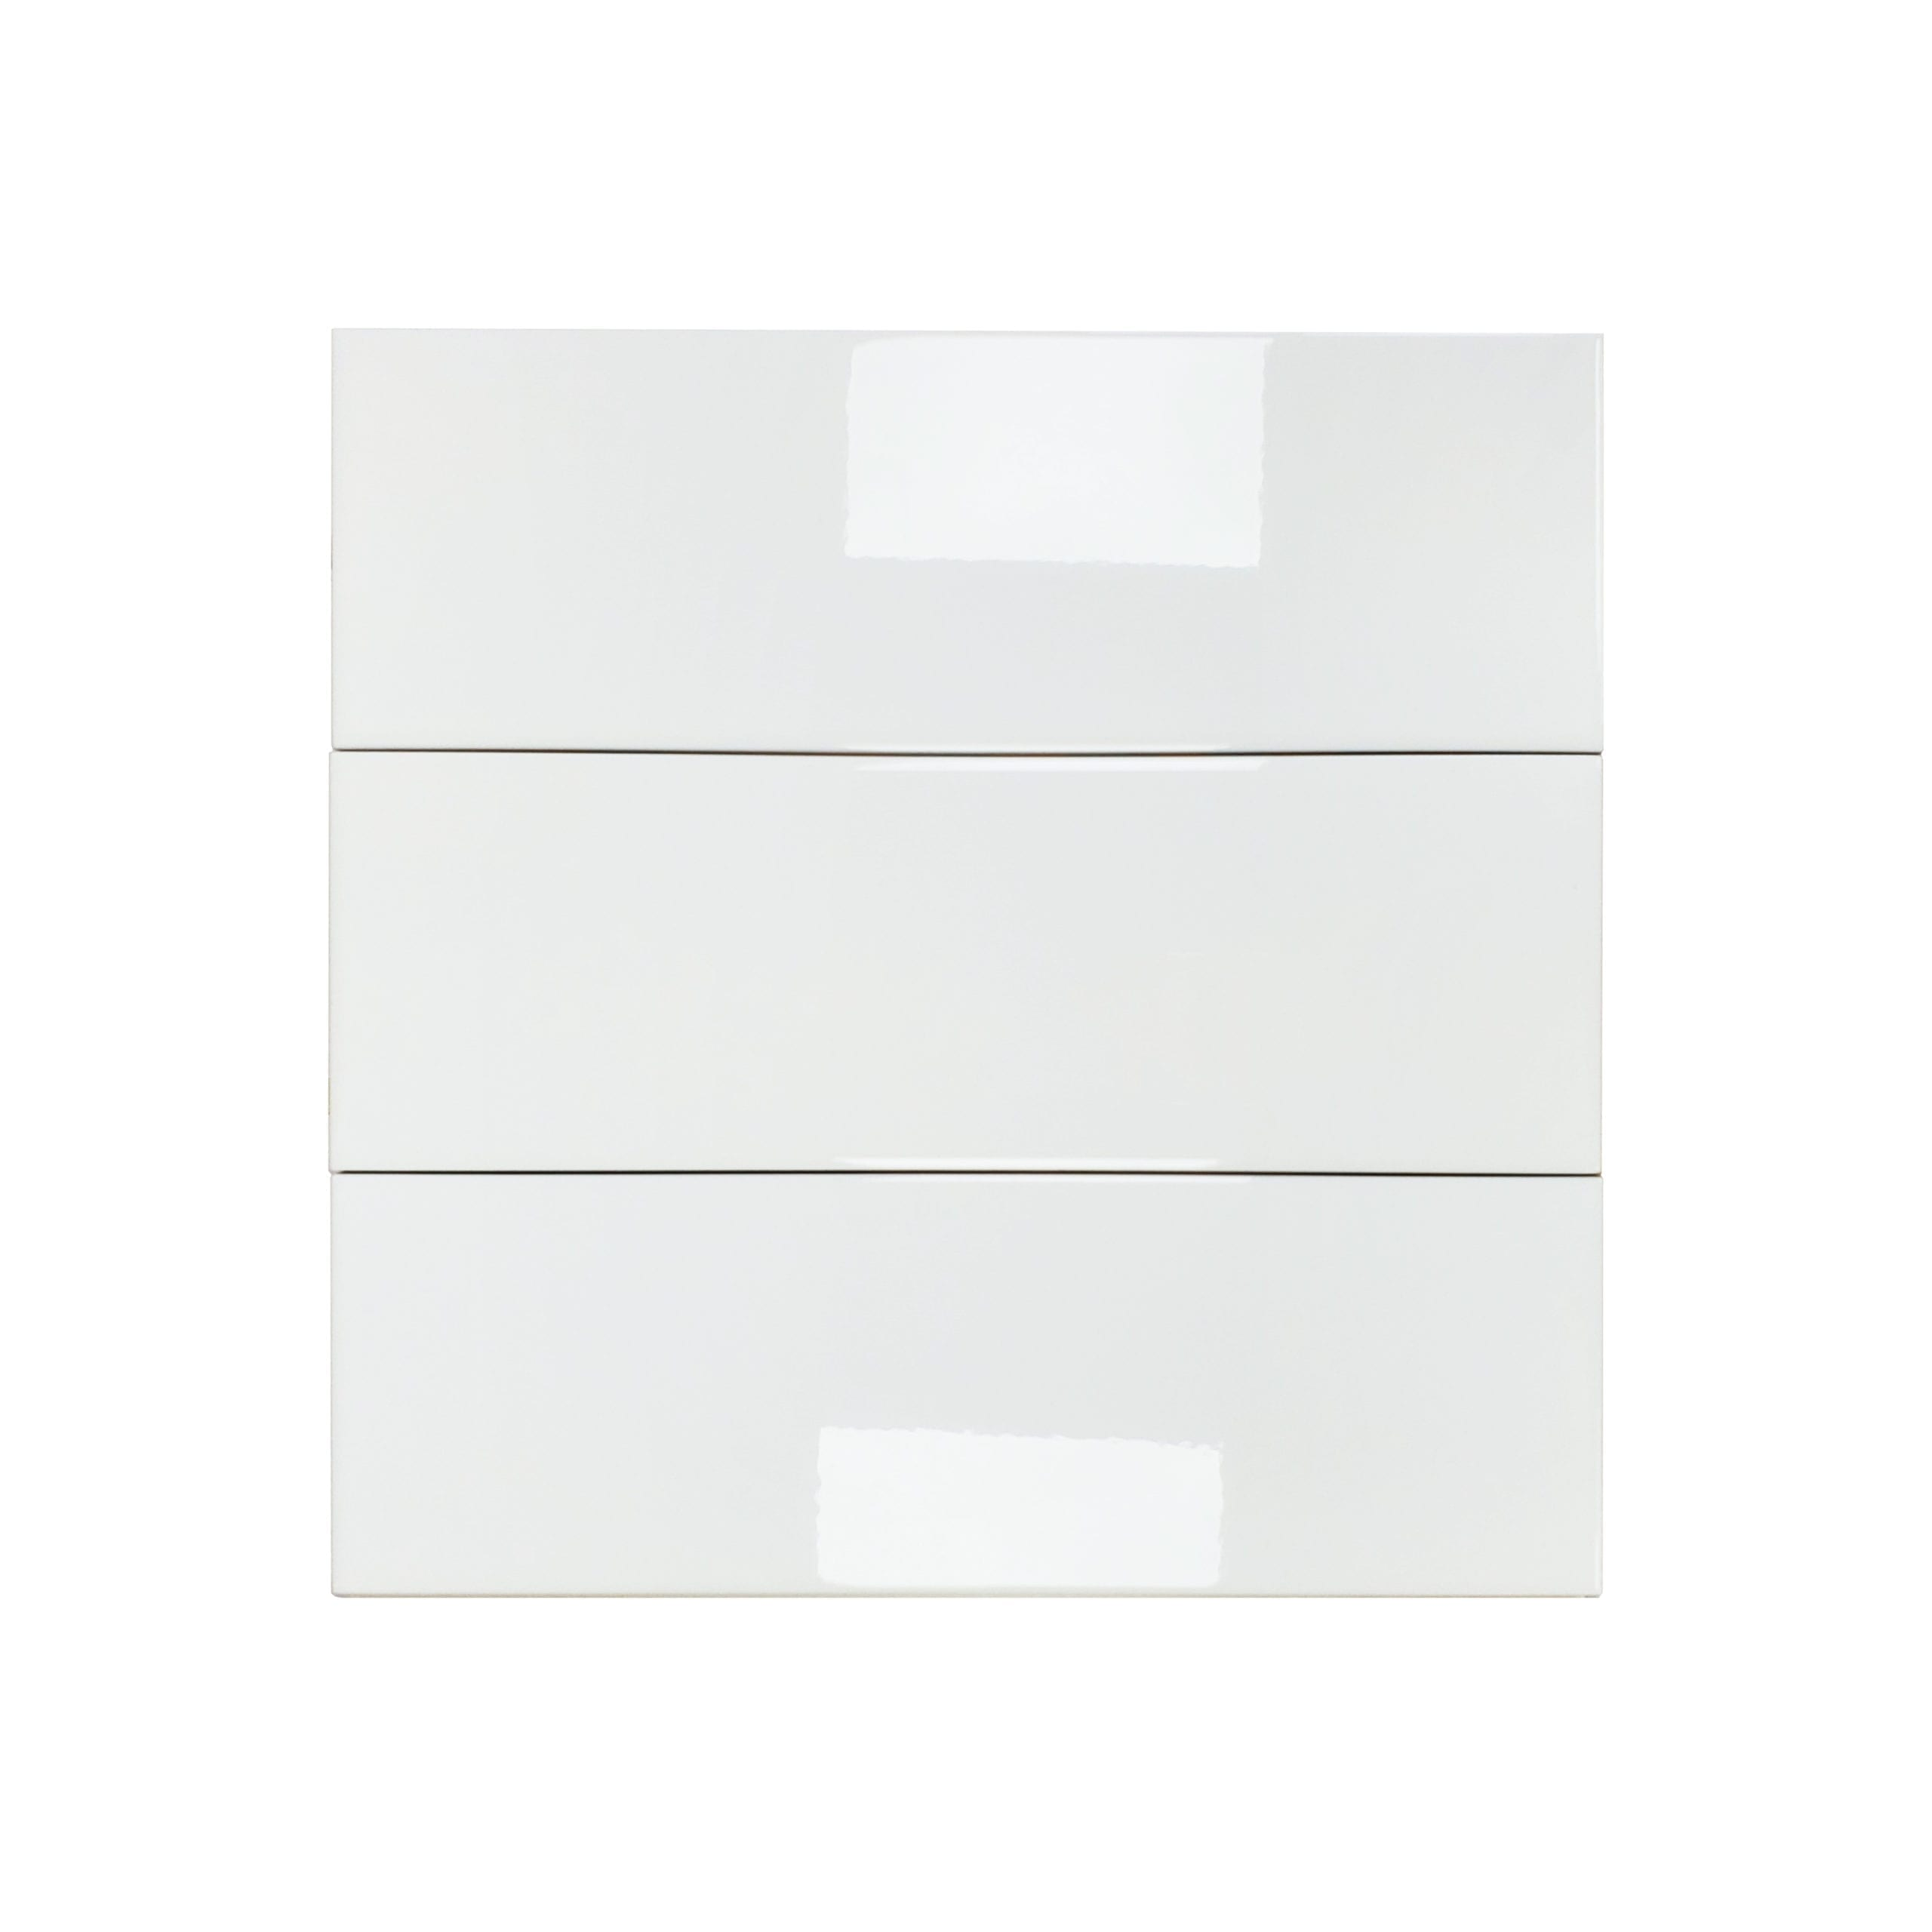 4×12 Super Tile_White Matte_1.99